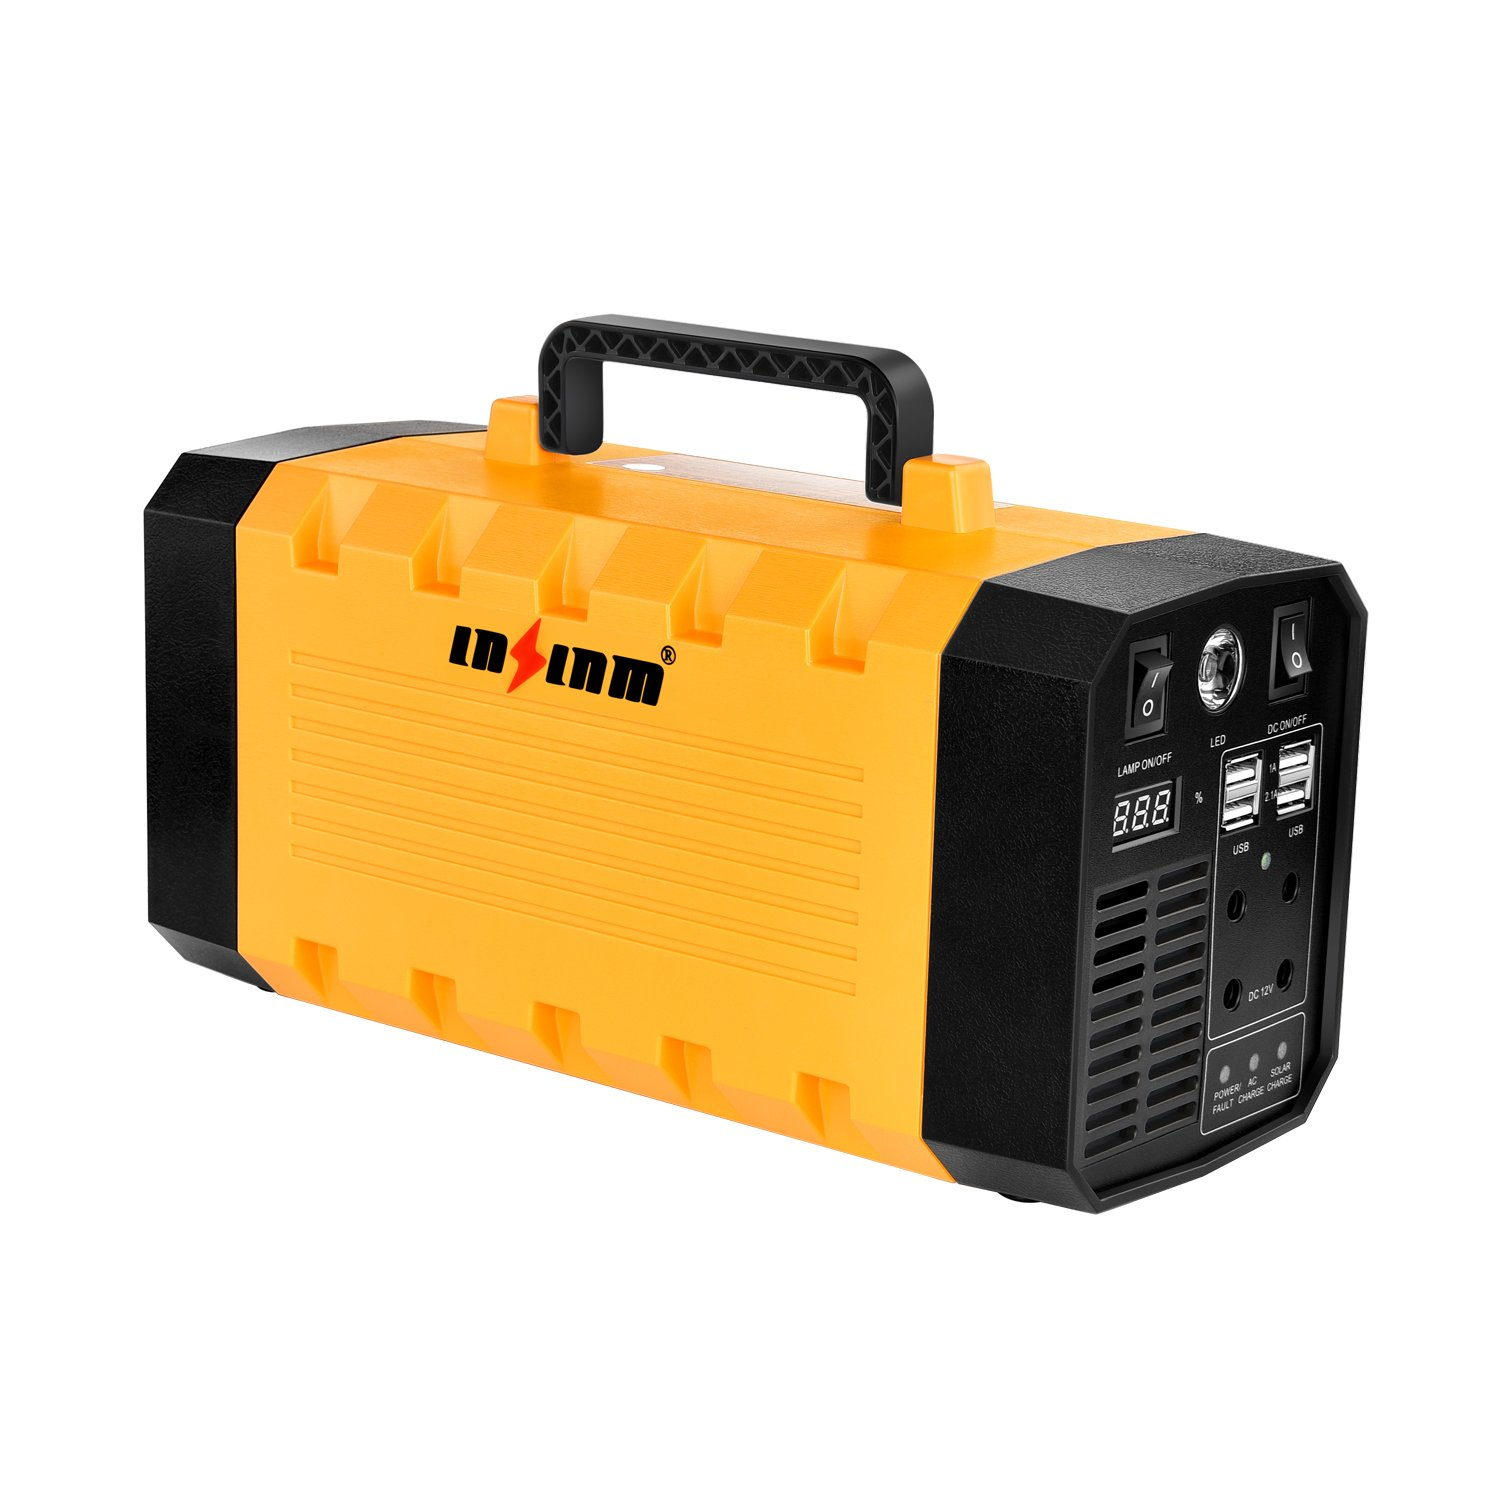 4. LNSLNM 500W Portable Generator Power Inverter